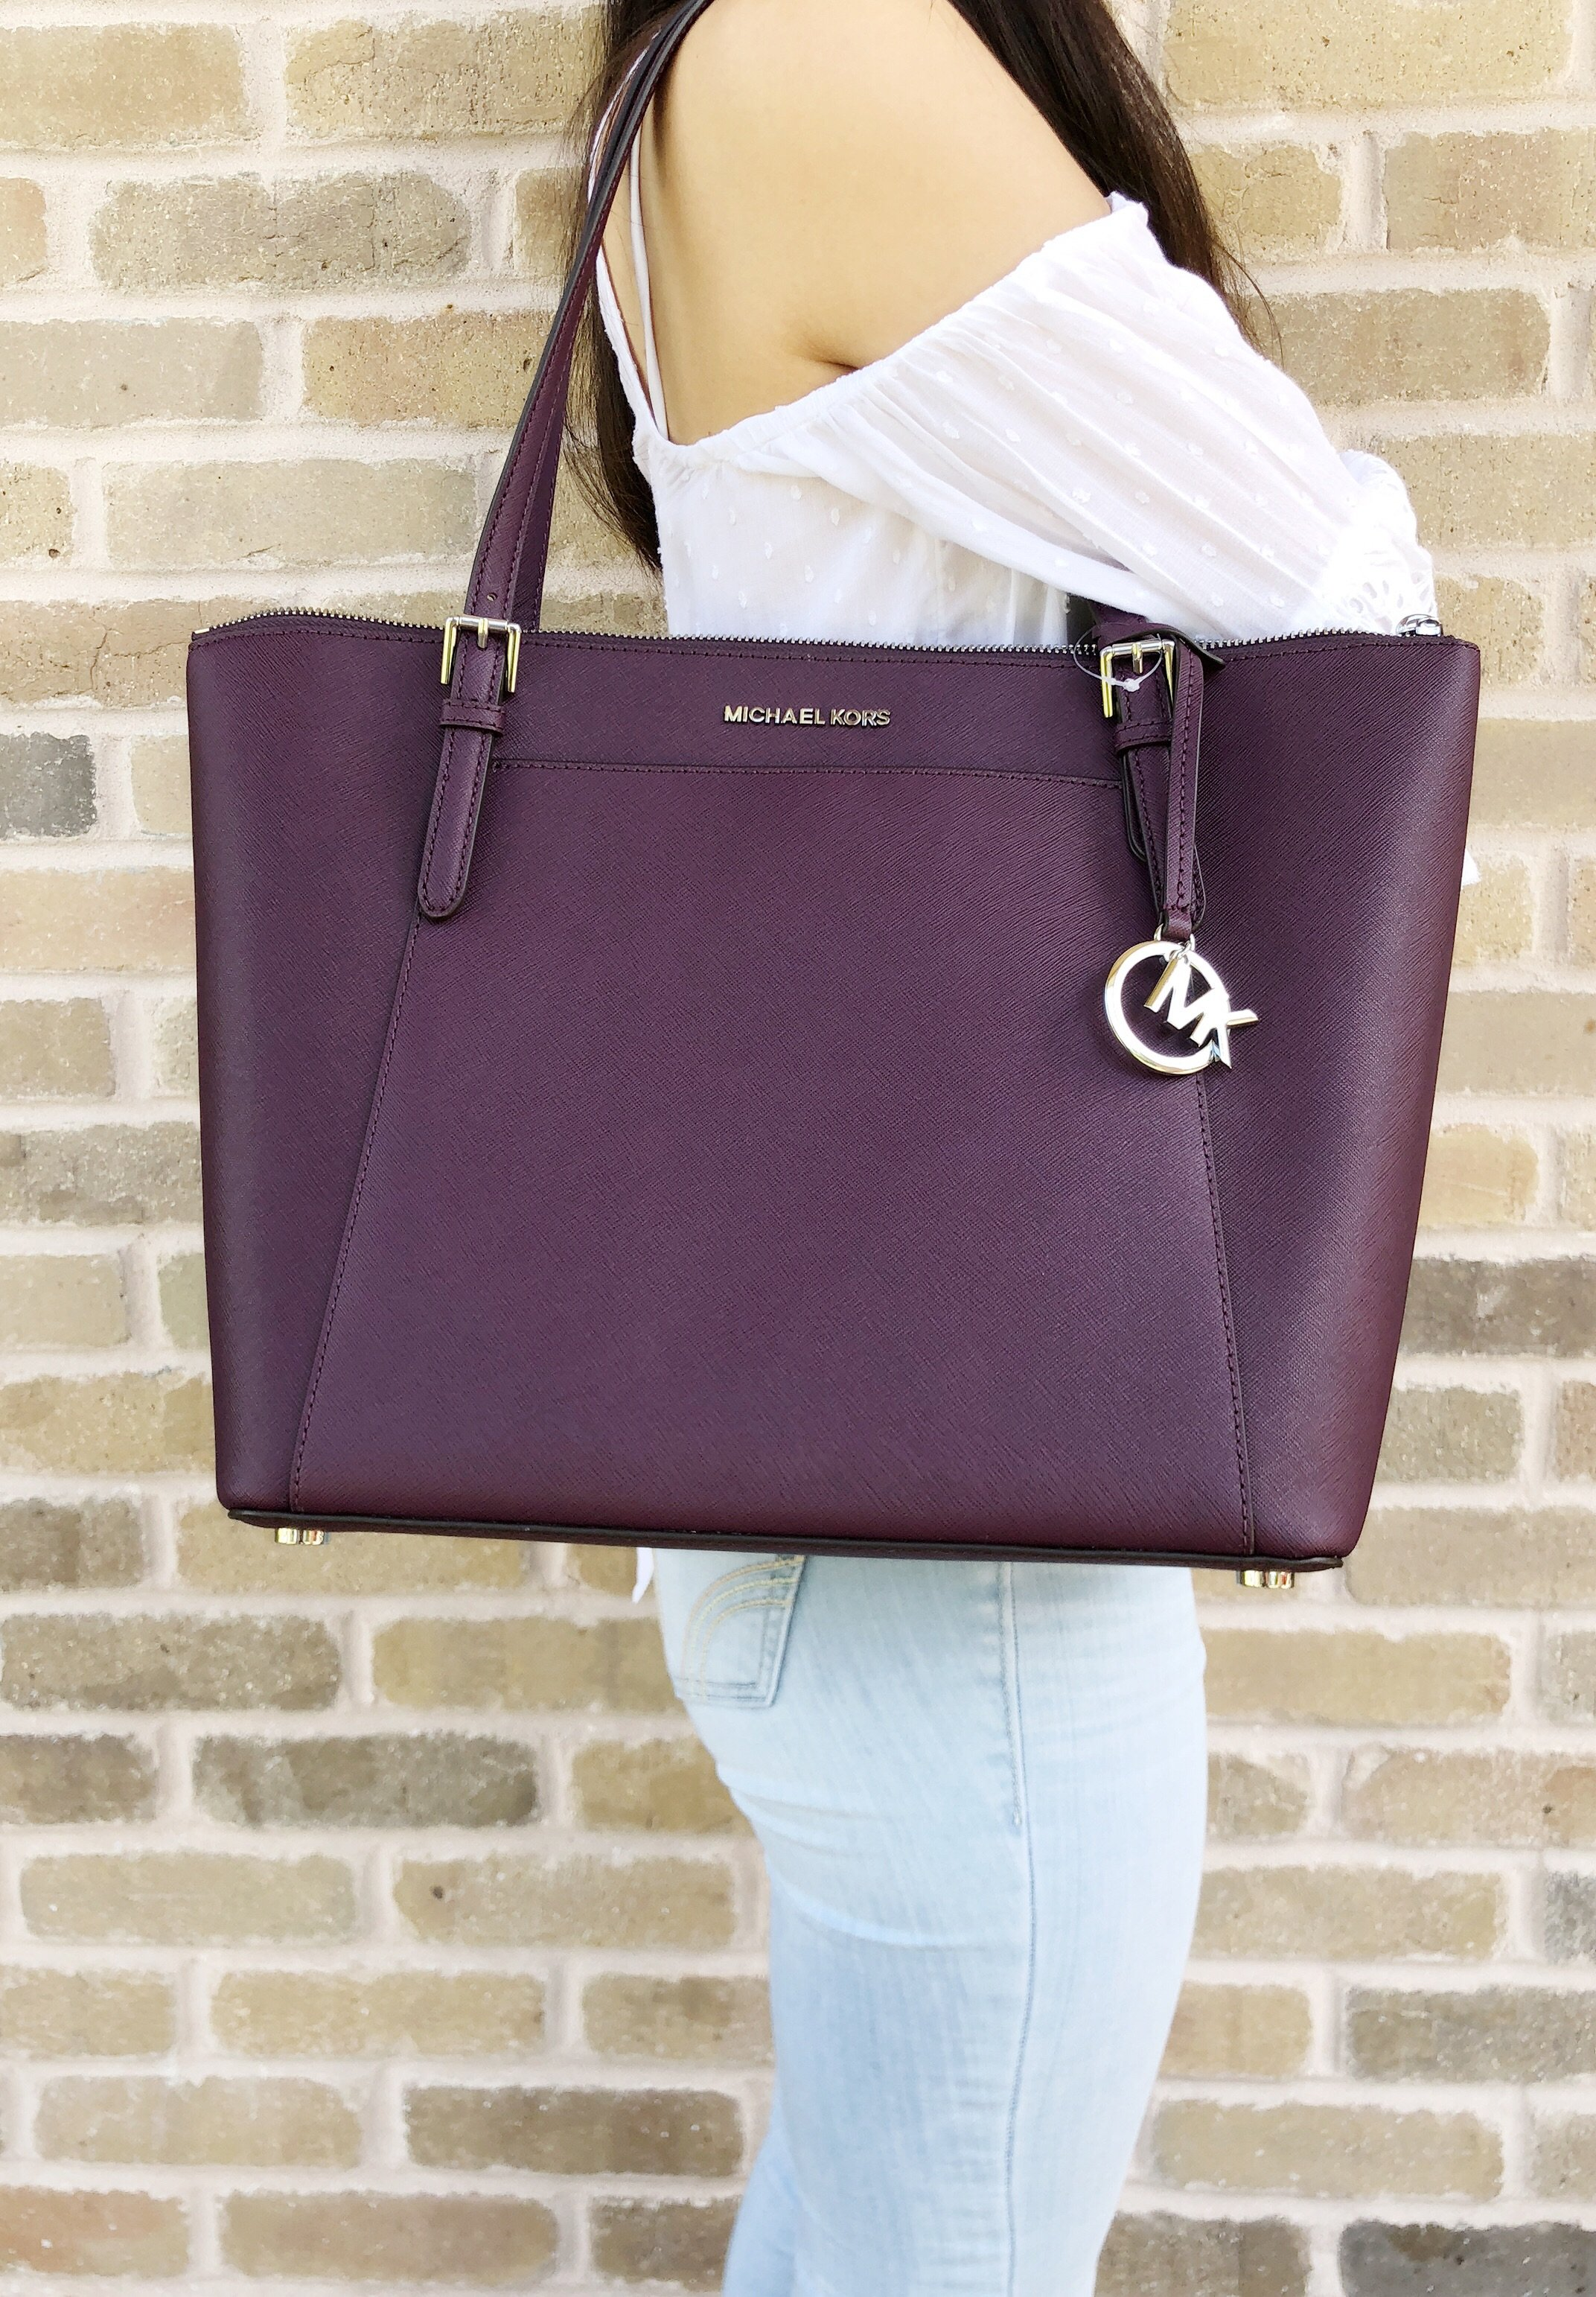 3ff448c973 Michael Kors Ciara Large East West Top Zip Tote Damson Purple Saffiano   Handbags  MichaelKors  MK